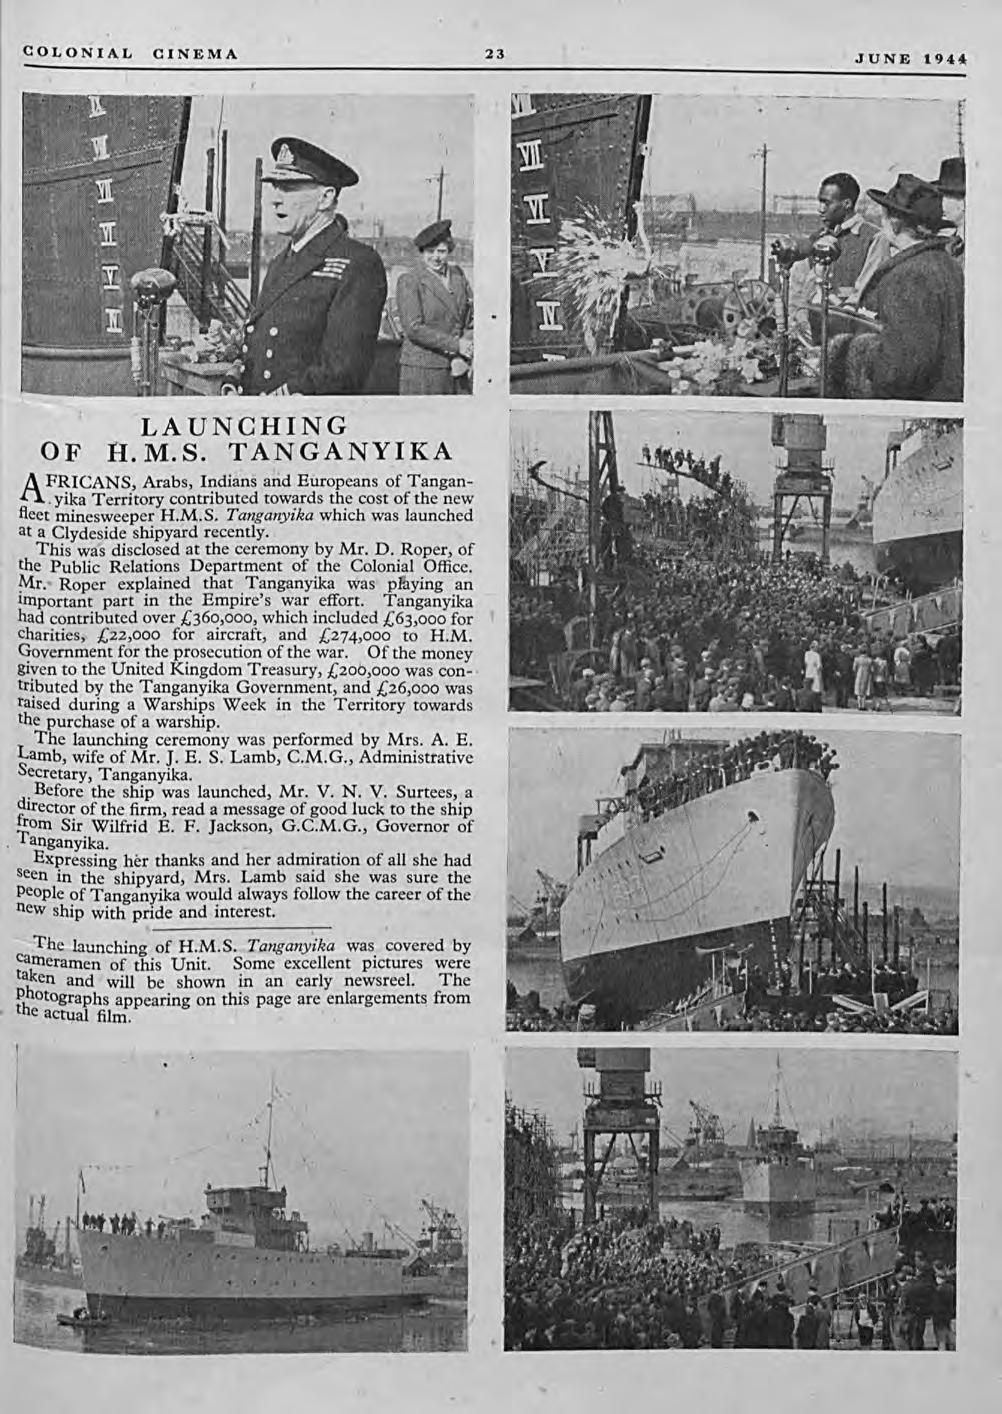 COLONIAL CINEMA 23 JUNE 1944 LAUNCHING OF Il.M.S. TANGANYIKA AFRICANS, Arabs, Indill'ns arid Europeans ~f Tangan-.yika Territory contributed towards the cost of the new fleet minesweeper H.M.S. Tanganyika which was launched at a Clydeside shipyard recently.